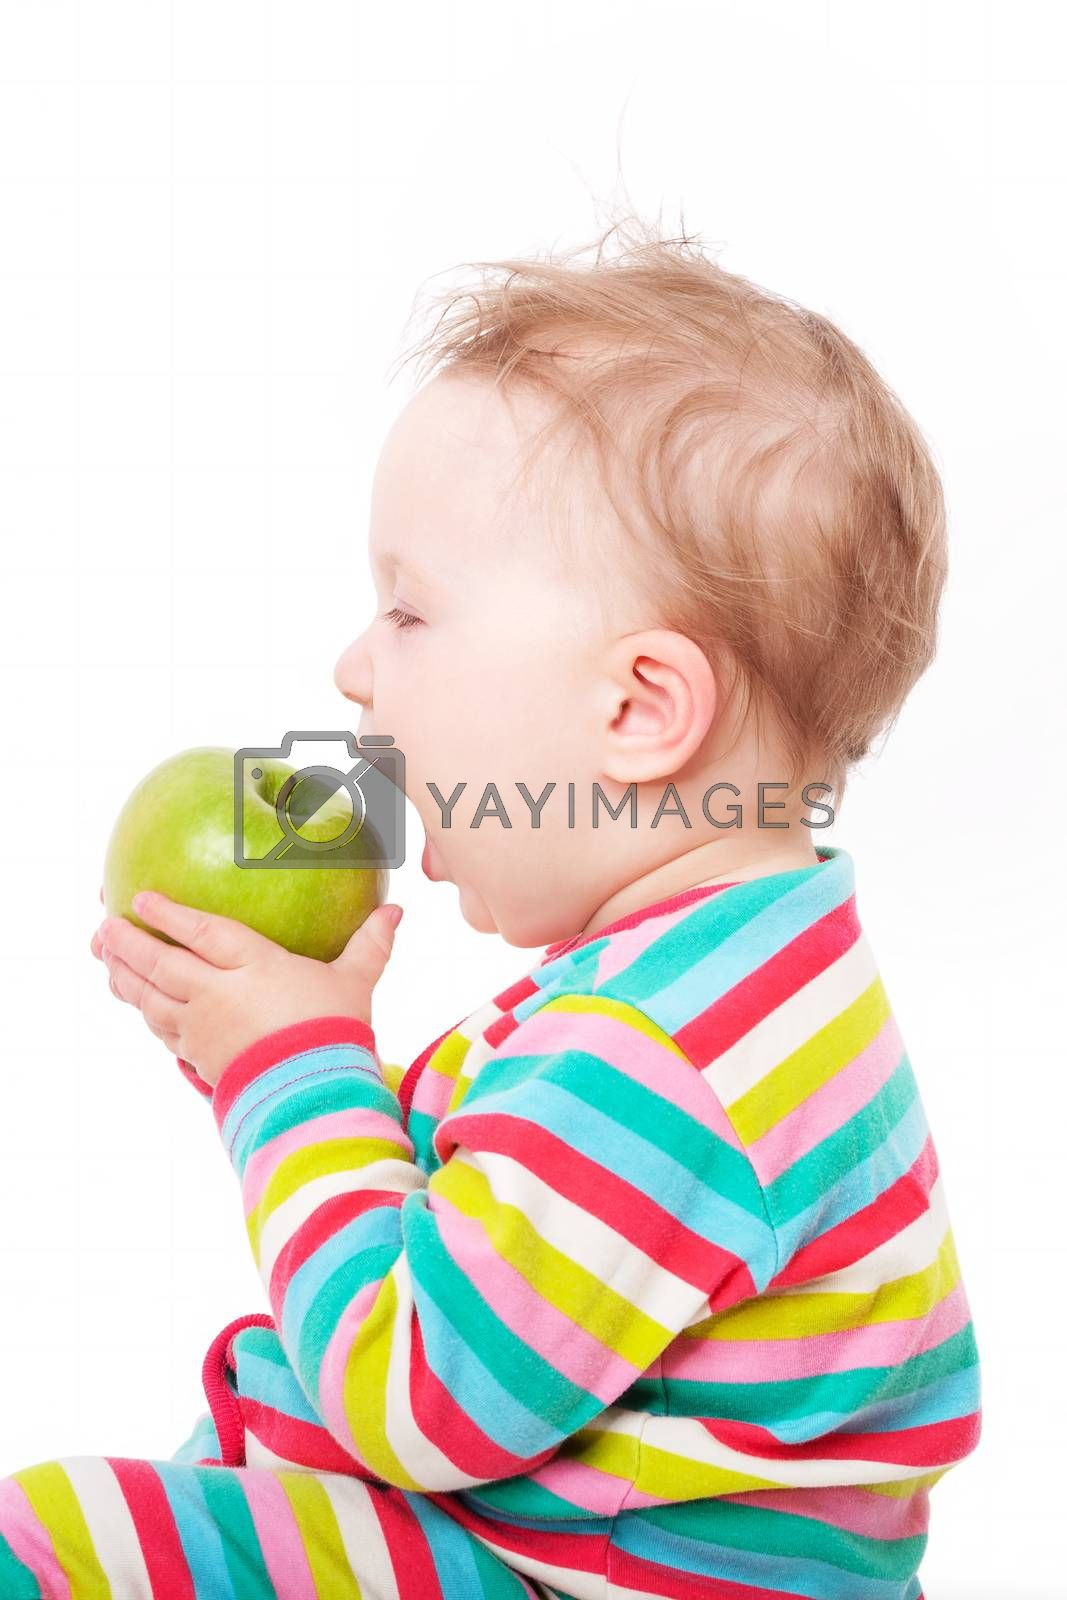 Small cute baby girl in colorful clothing holding and eating green apple isolated on white background. First teeth concept.